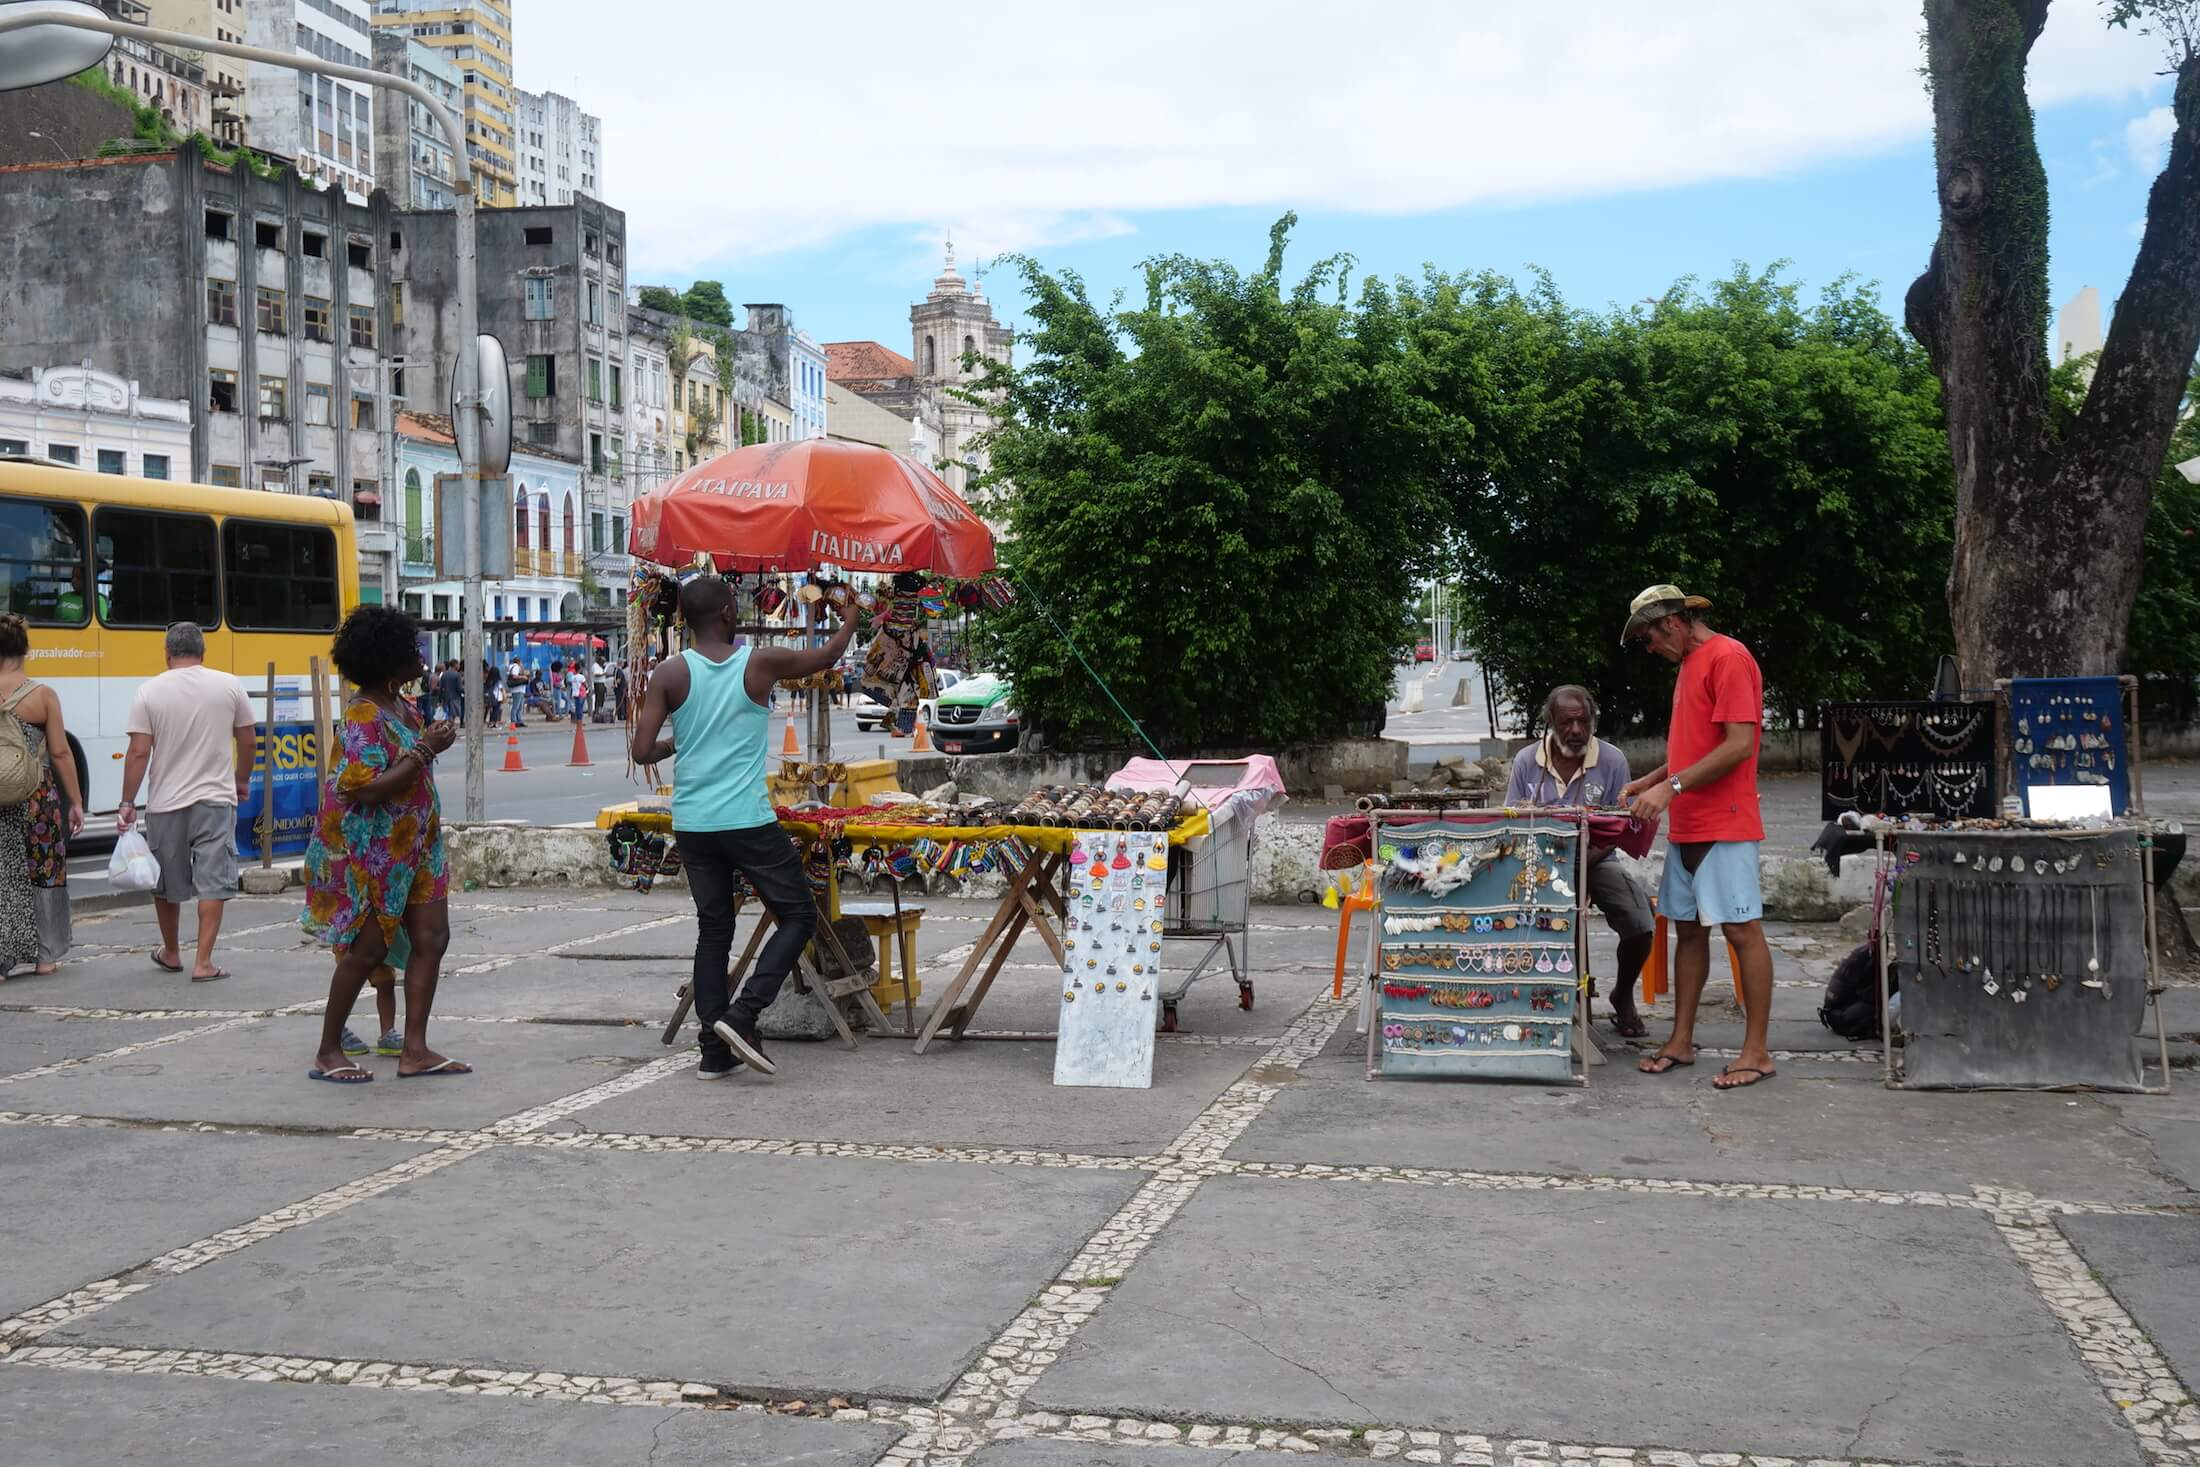 You can stop here to buy water, or buy souvenirs, before entering the market